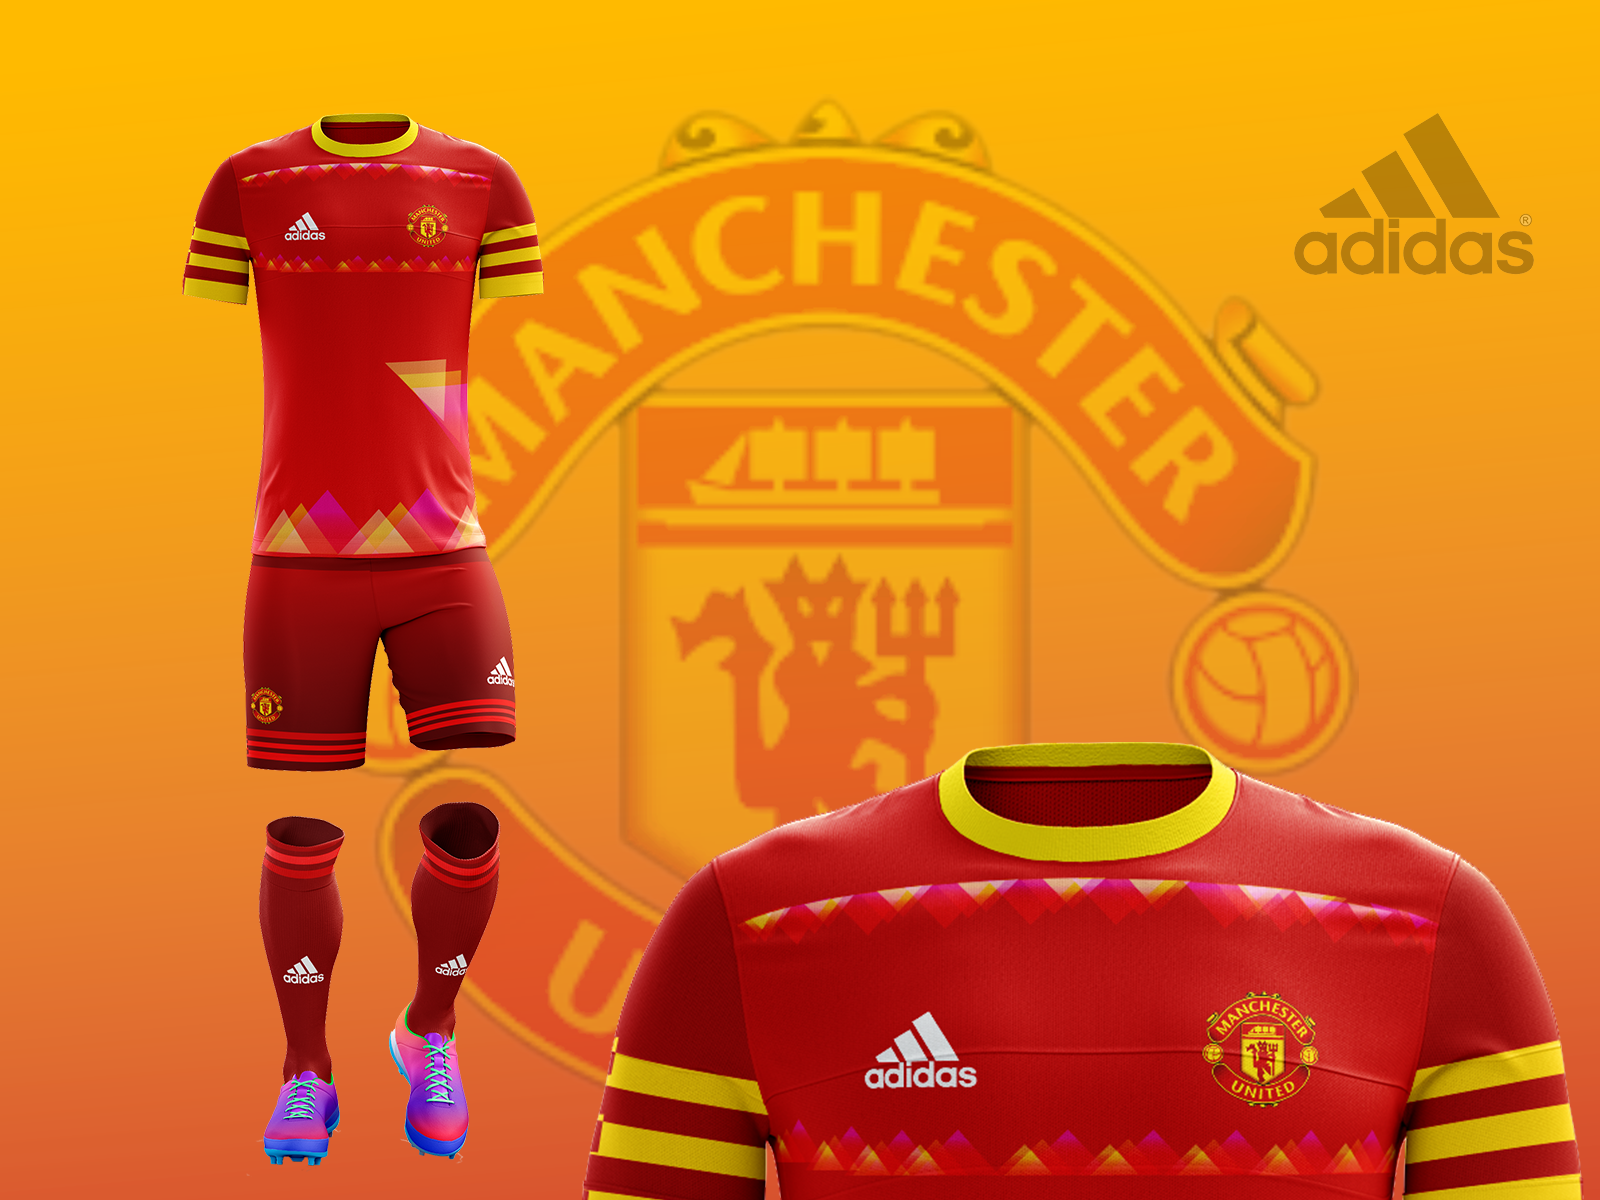 man united 2021 home kit a by oluwadara oyaromade on dribbble man united 2021 home kit a by oluwadara